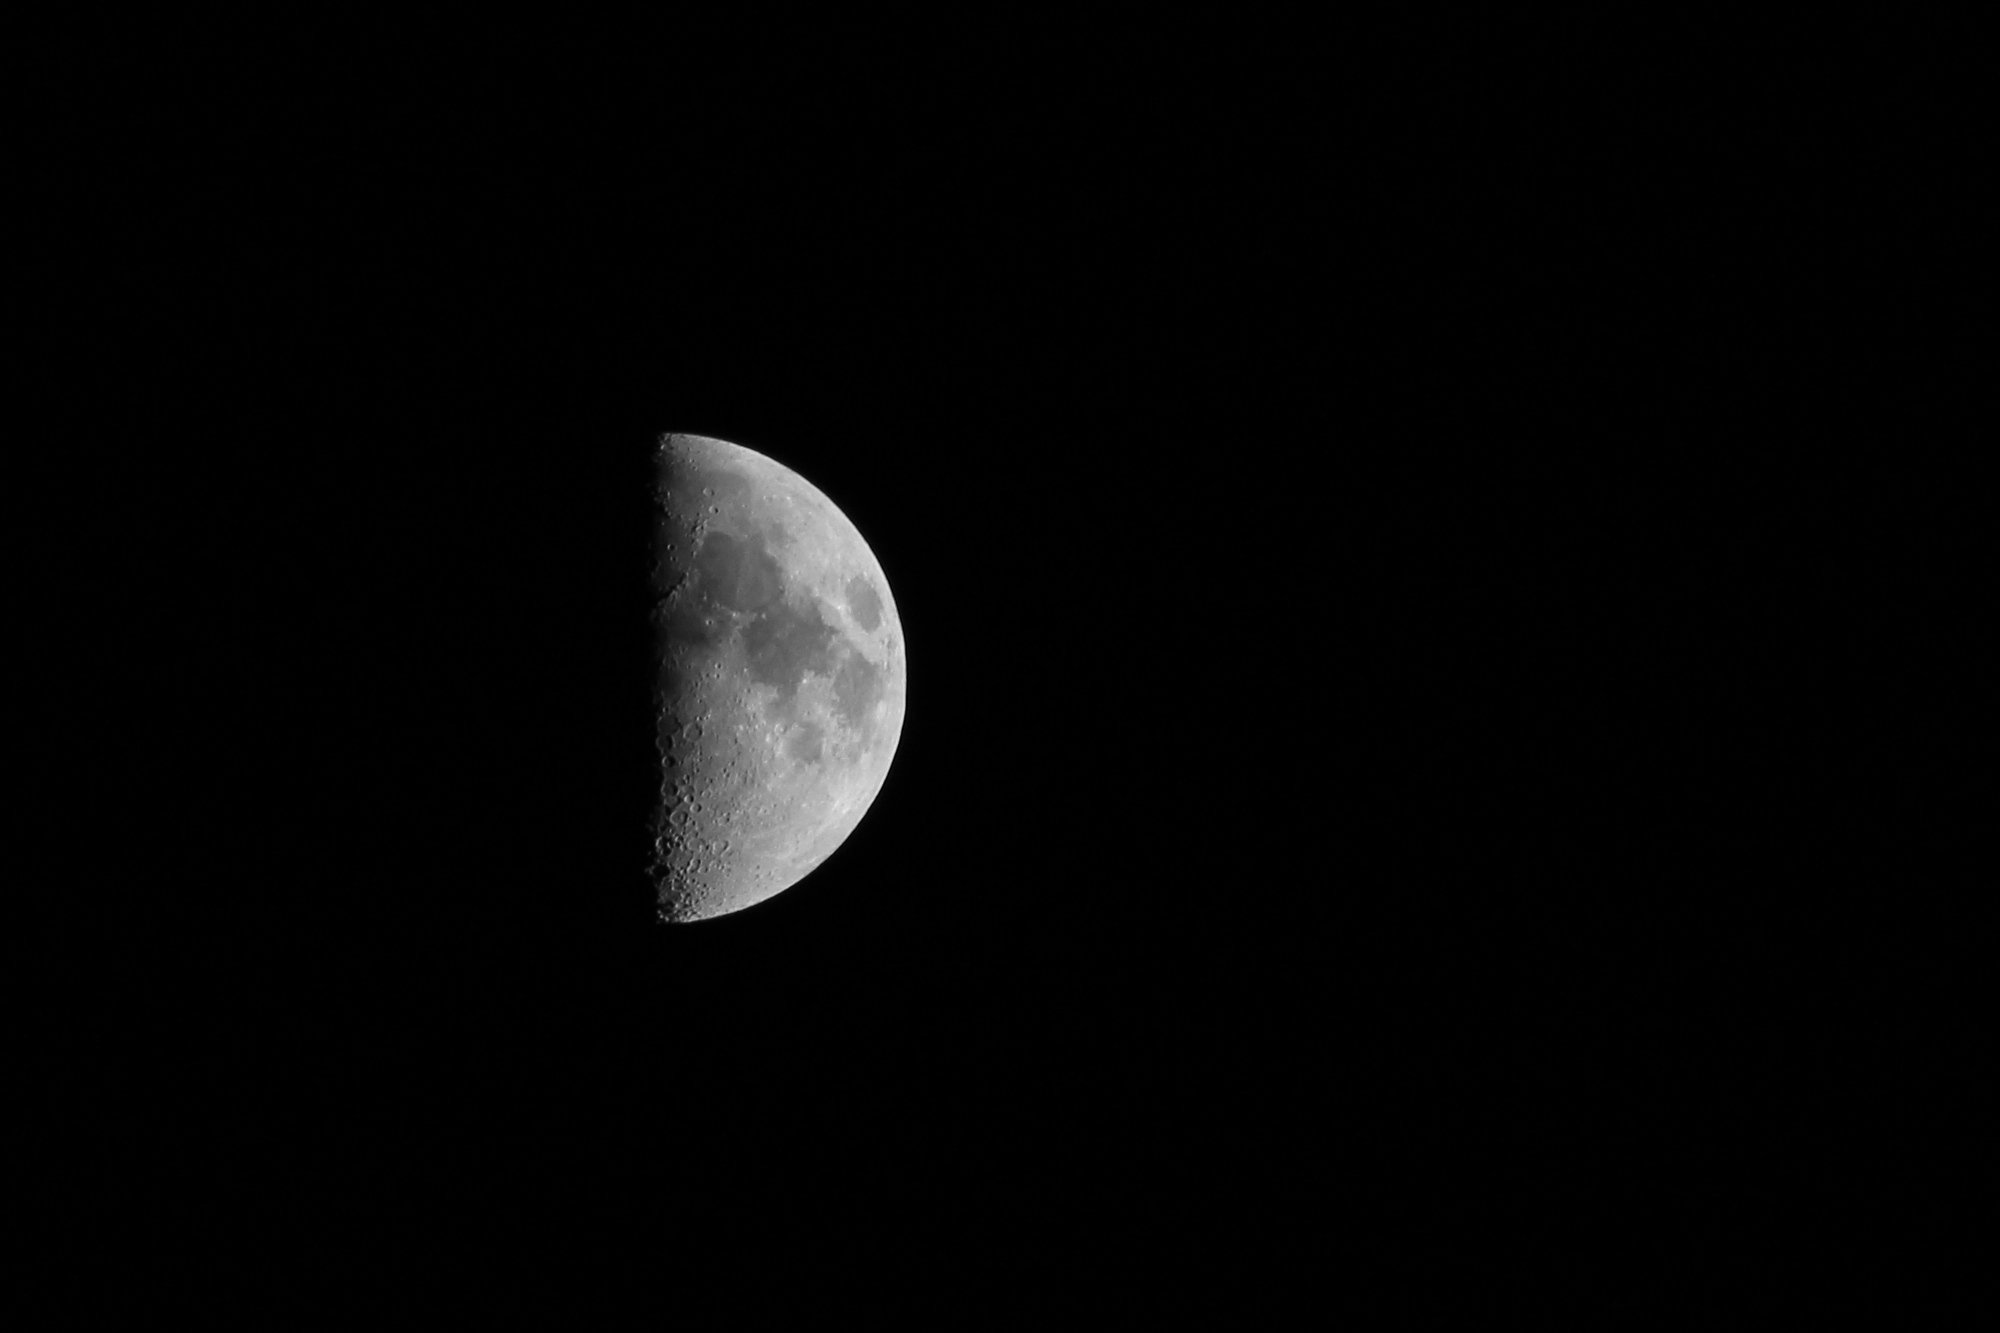 The Moon (b&w)